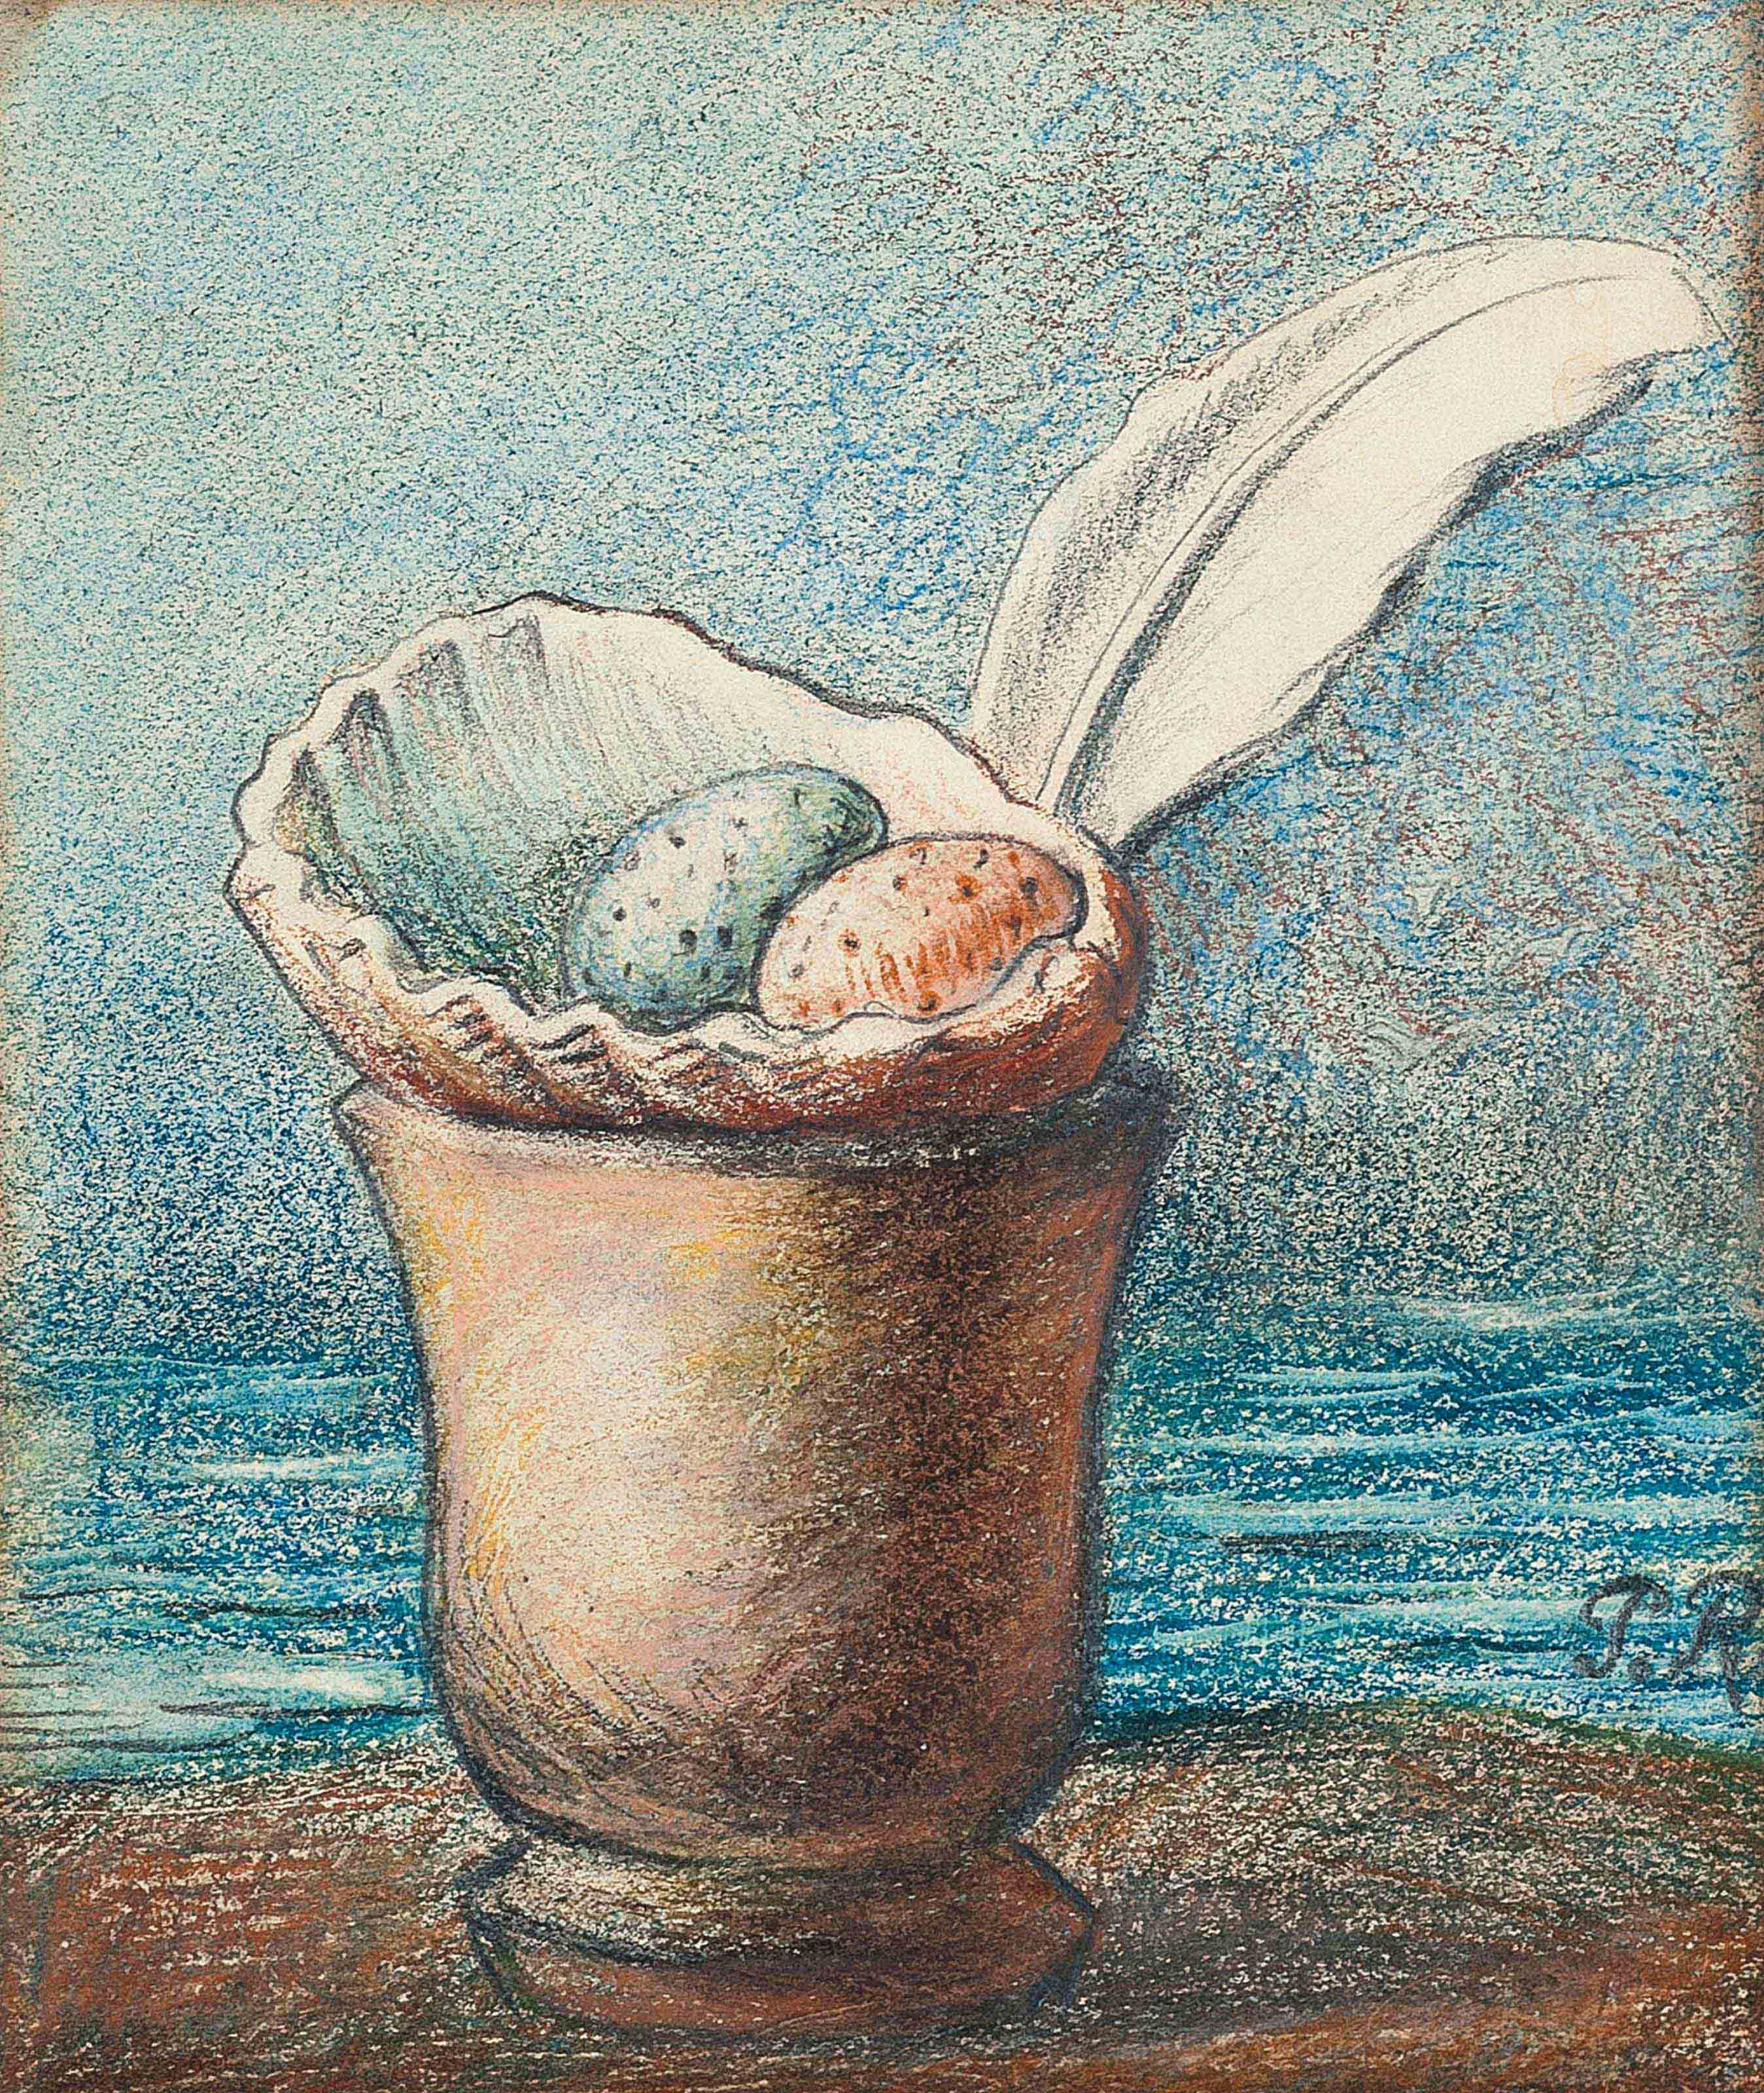 Coquillage avec oeufs